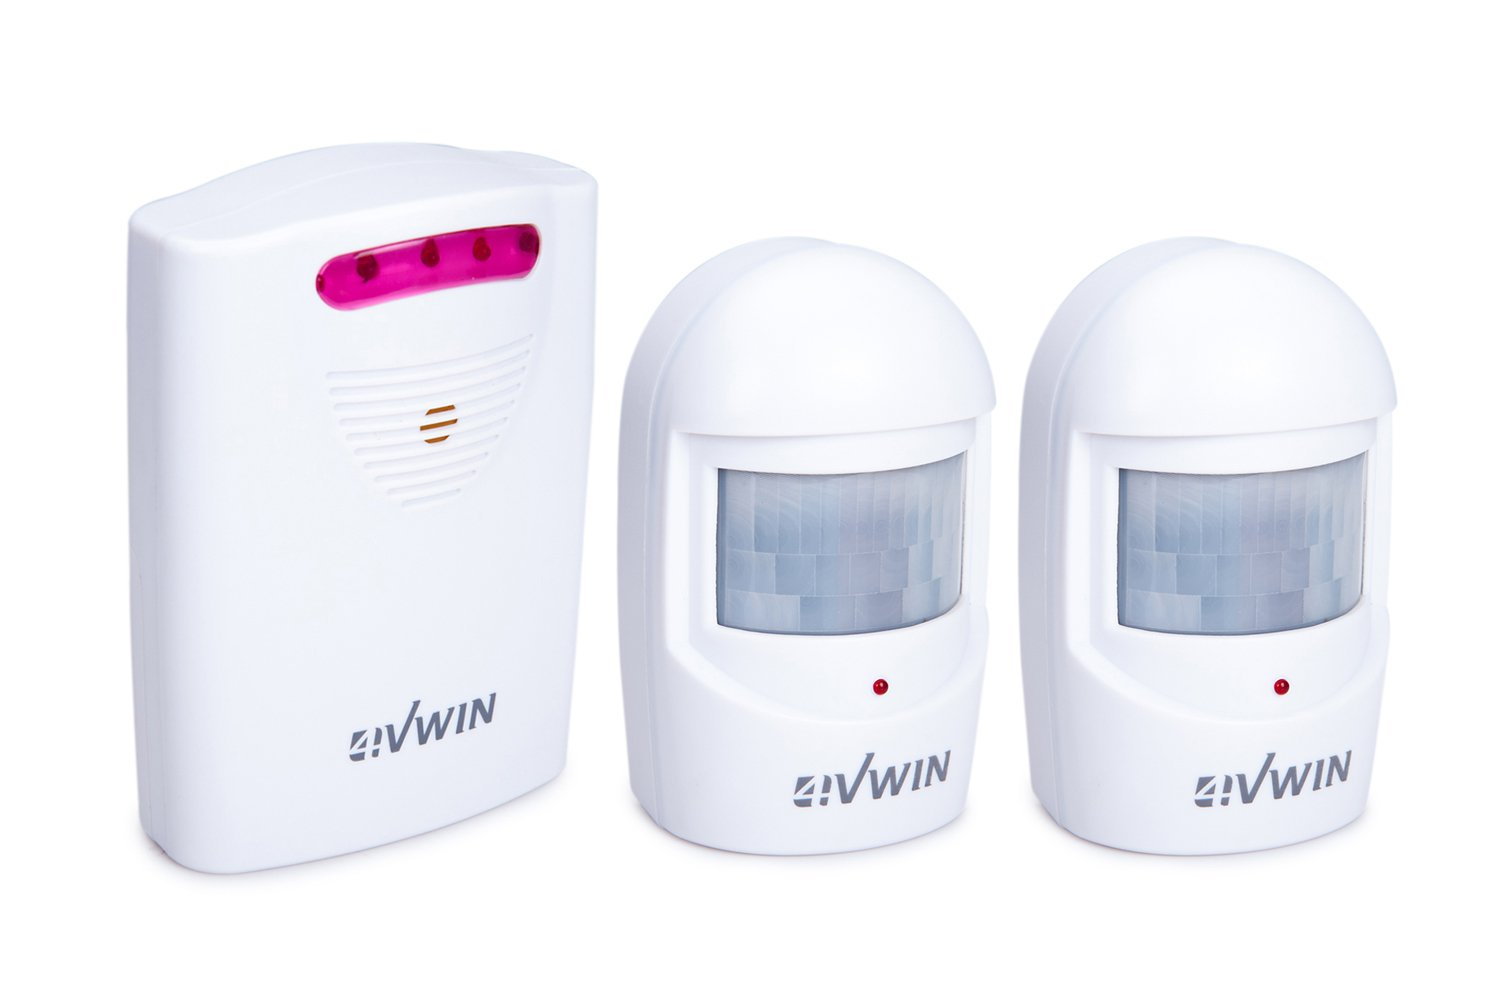 4VWIN driveway alarm provides a convenient and economic way to alert you the moment when someone is approaching your home by 4VWIN